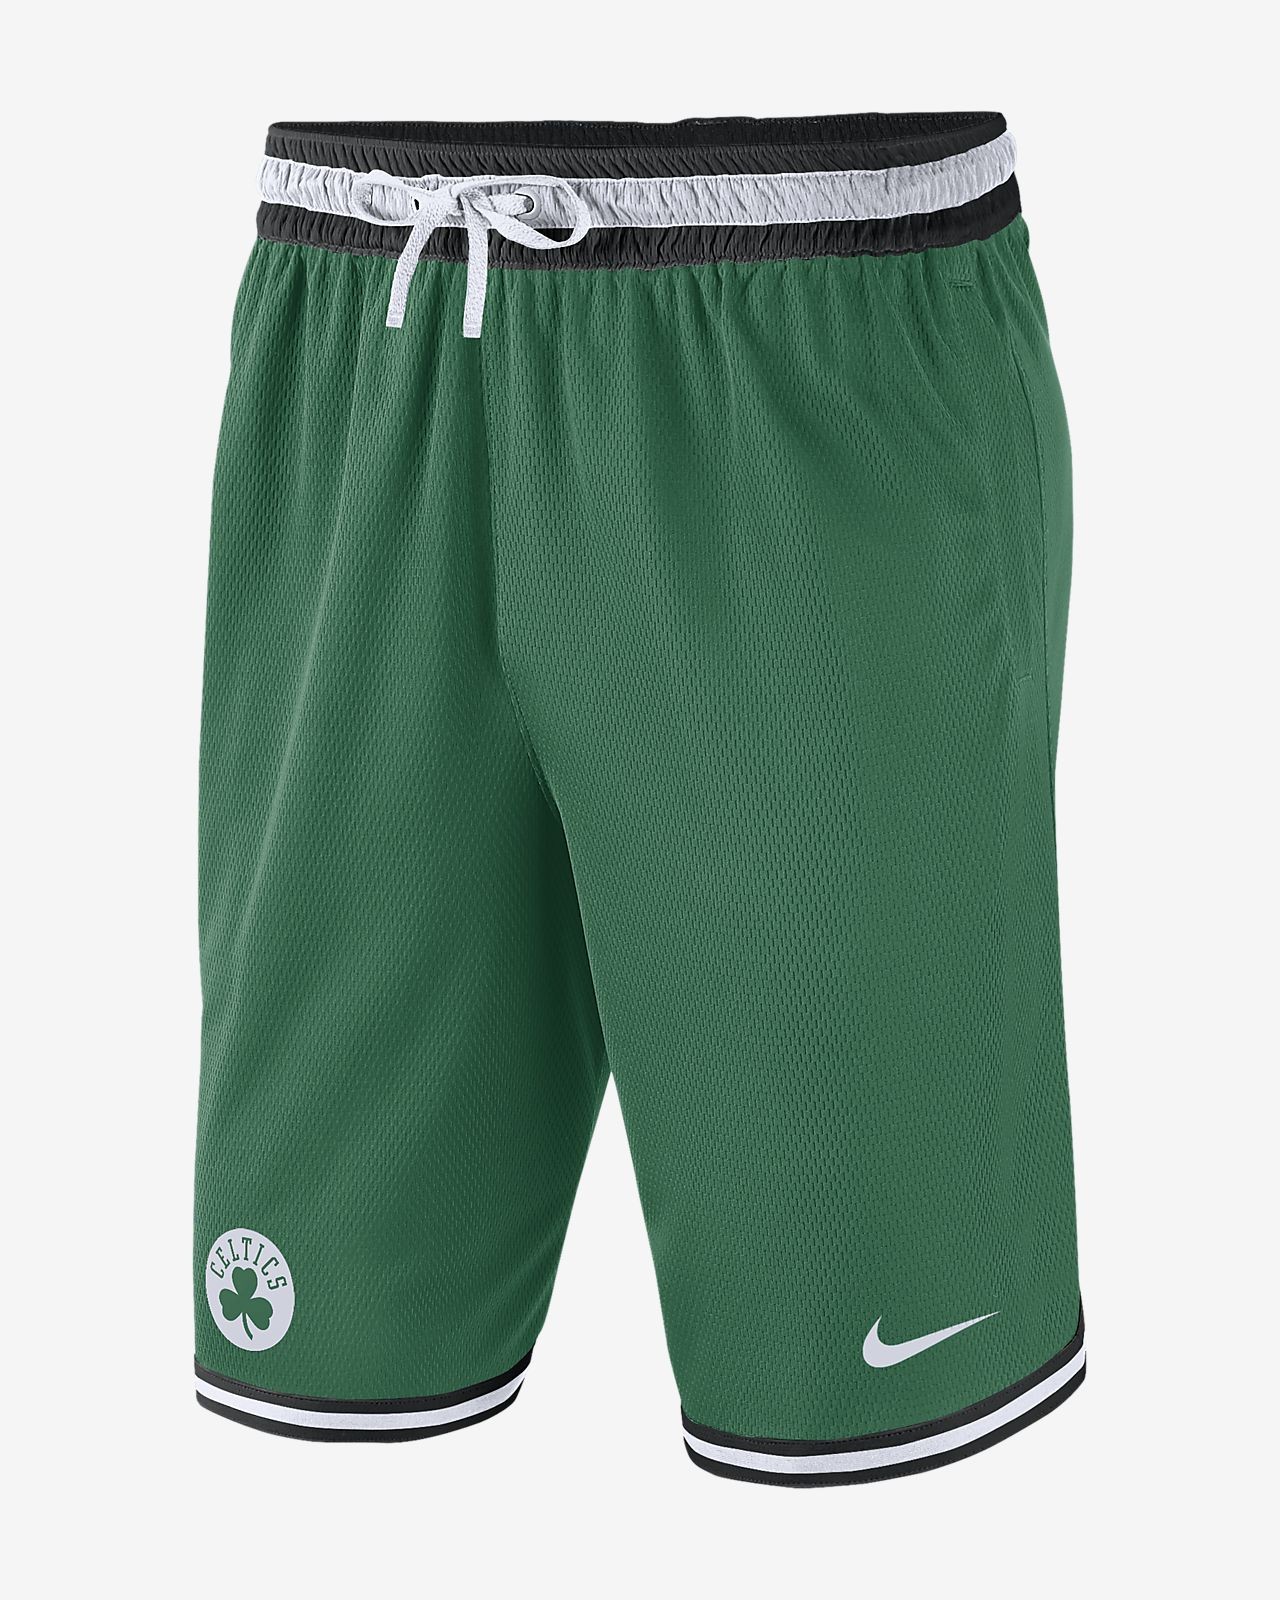 Boston Celtics Nike Men's NBA Shorts